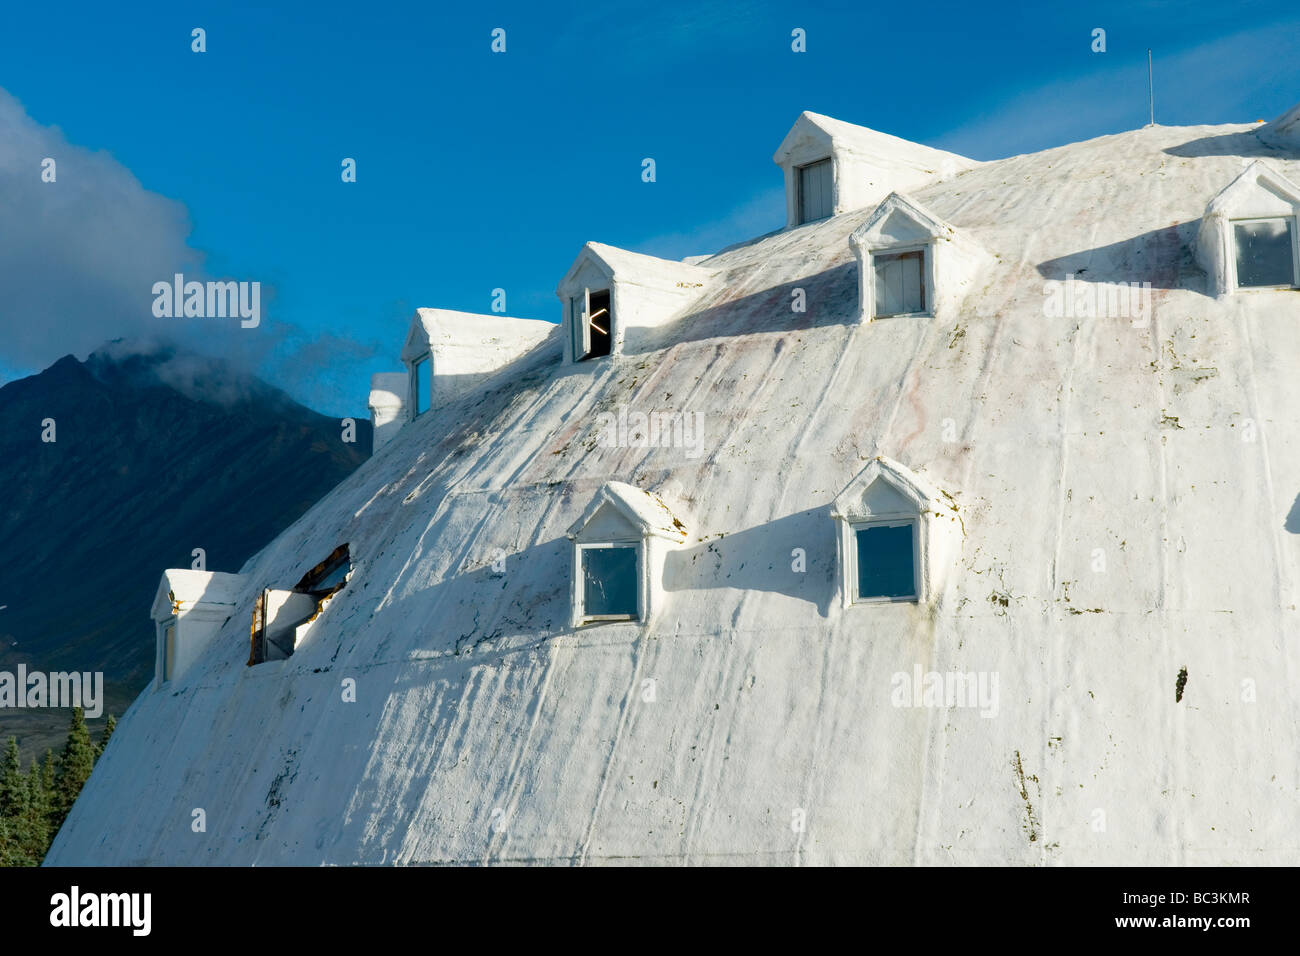 Le Village d'Igloo Alaska Gas Station Photo Stock